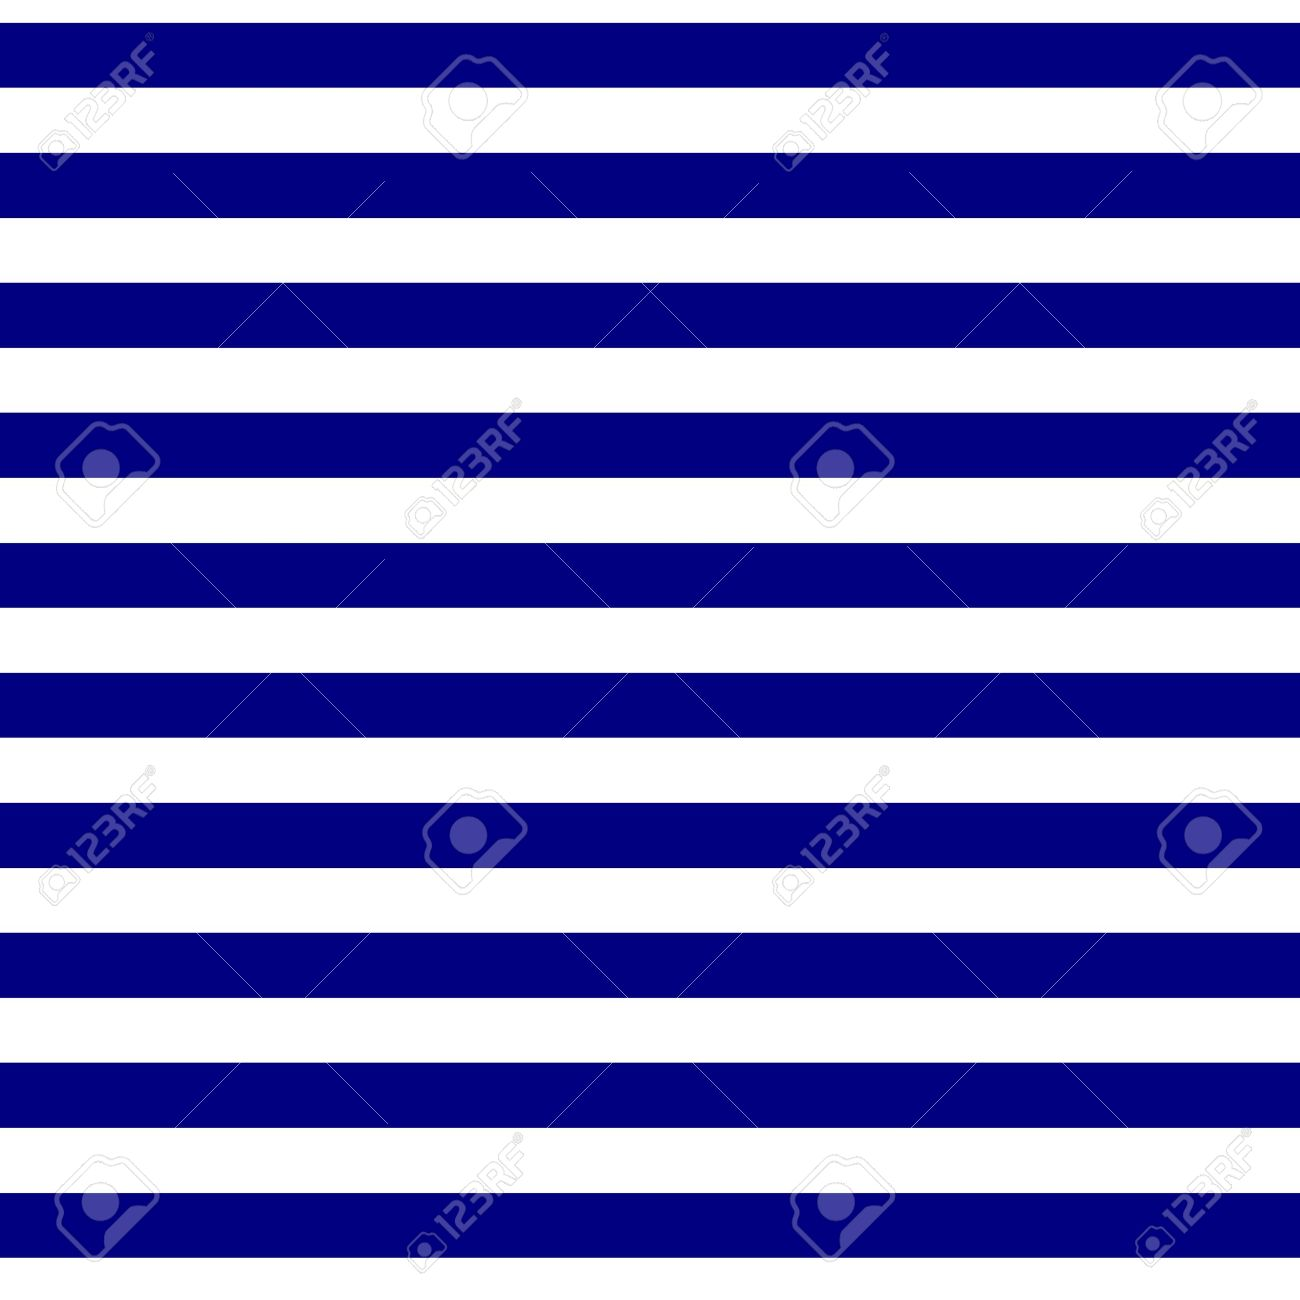 Seamless geometric horizontal striped pattern. Abstract background. Blue and white stripes. Modern navy blue stripes background. Tileable wallpaper pattern - 58646614